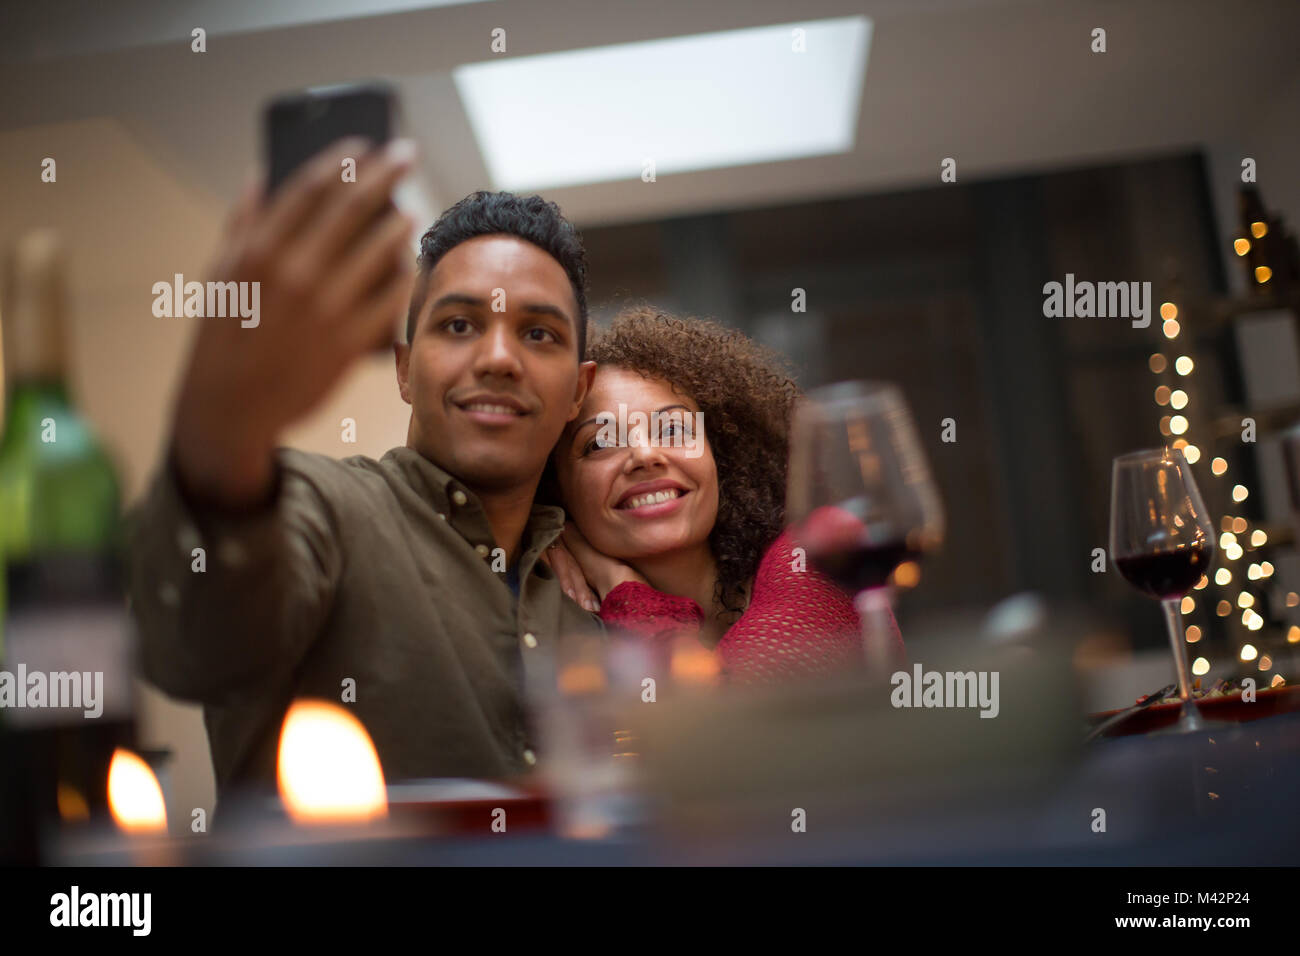 Couple taking a selfie at a celebration - Stock Image